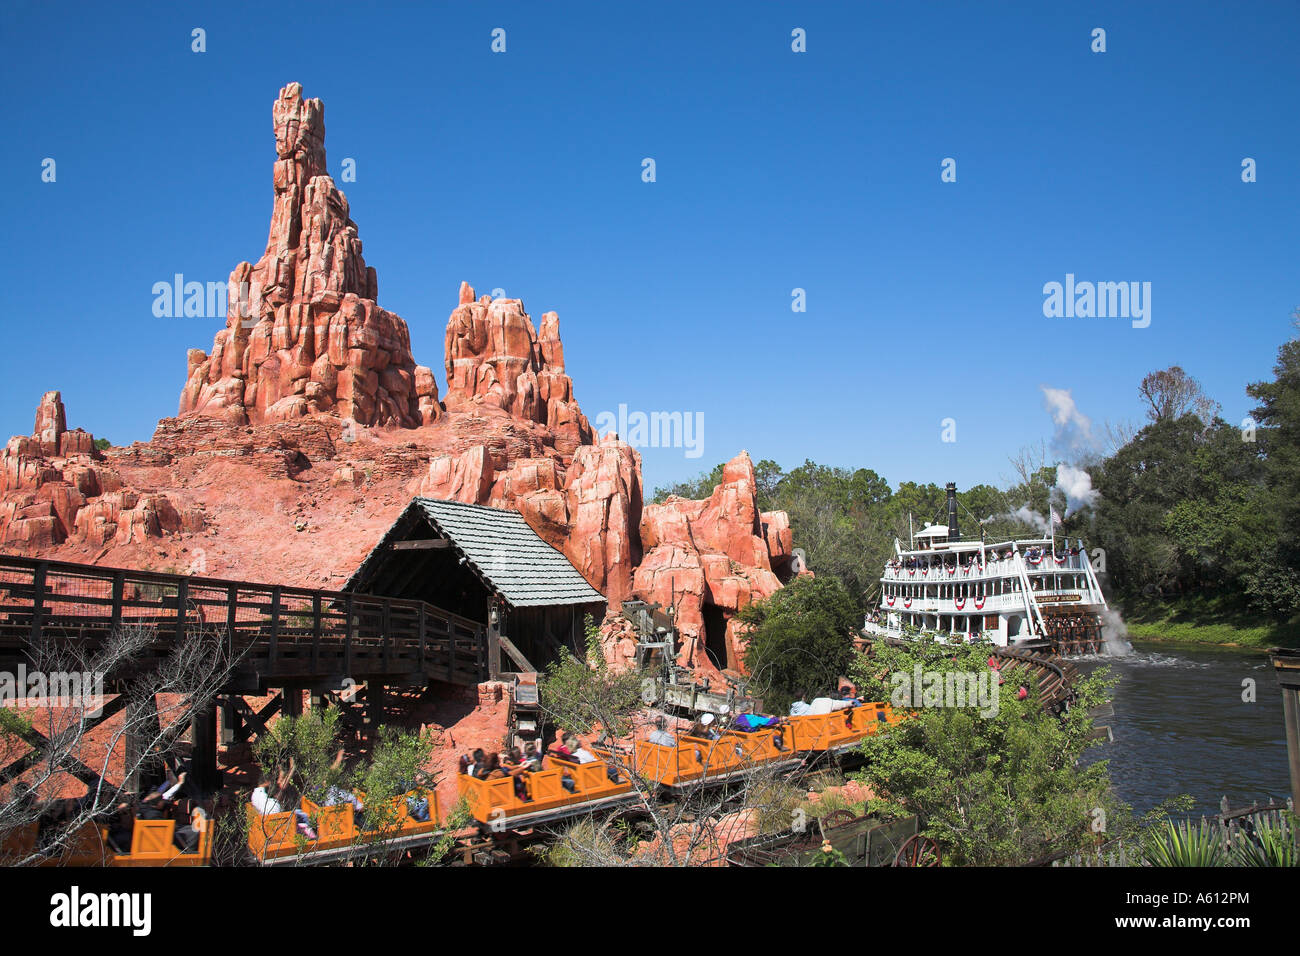 He was named and given a personality for a 2013 marketing campaign for walt disney world where he desired an opportunity to leave the attraction and explore the resort for himself. Big Thunder Mountain Railroad Fahren Liberty Belle Raddampfer Magic Kingdom Disney World Orlando Florida Usa Stockfotografie Alamy